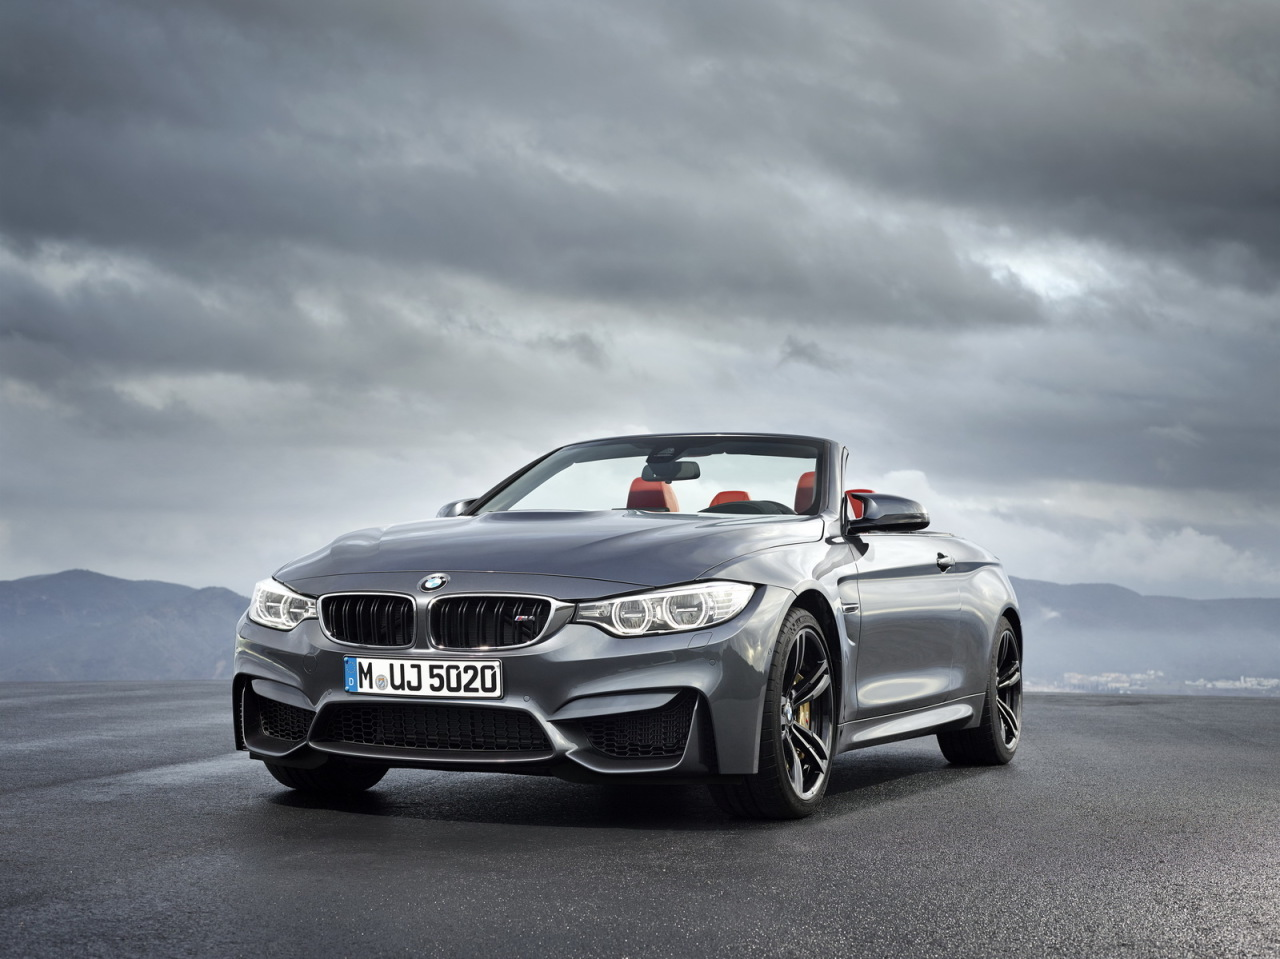 prix bmw m4 cabriolet partir de 88 500 euros l 39 argus. Black Bedroom Furniture Sets. Home Design Ideas